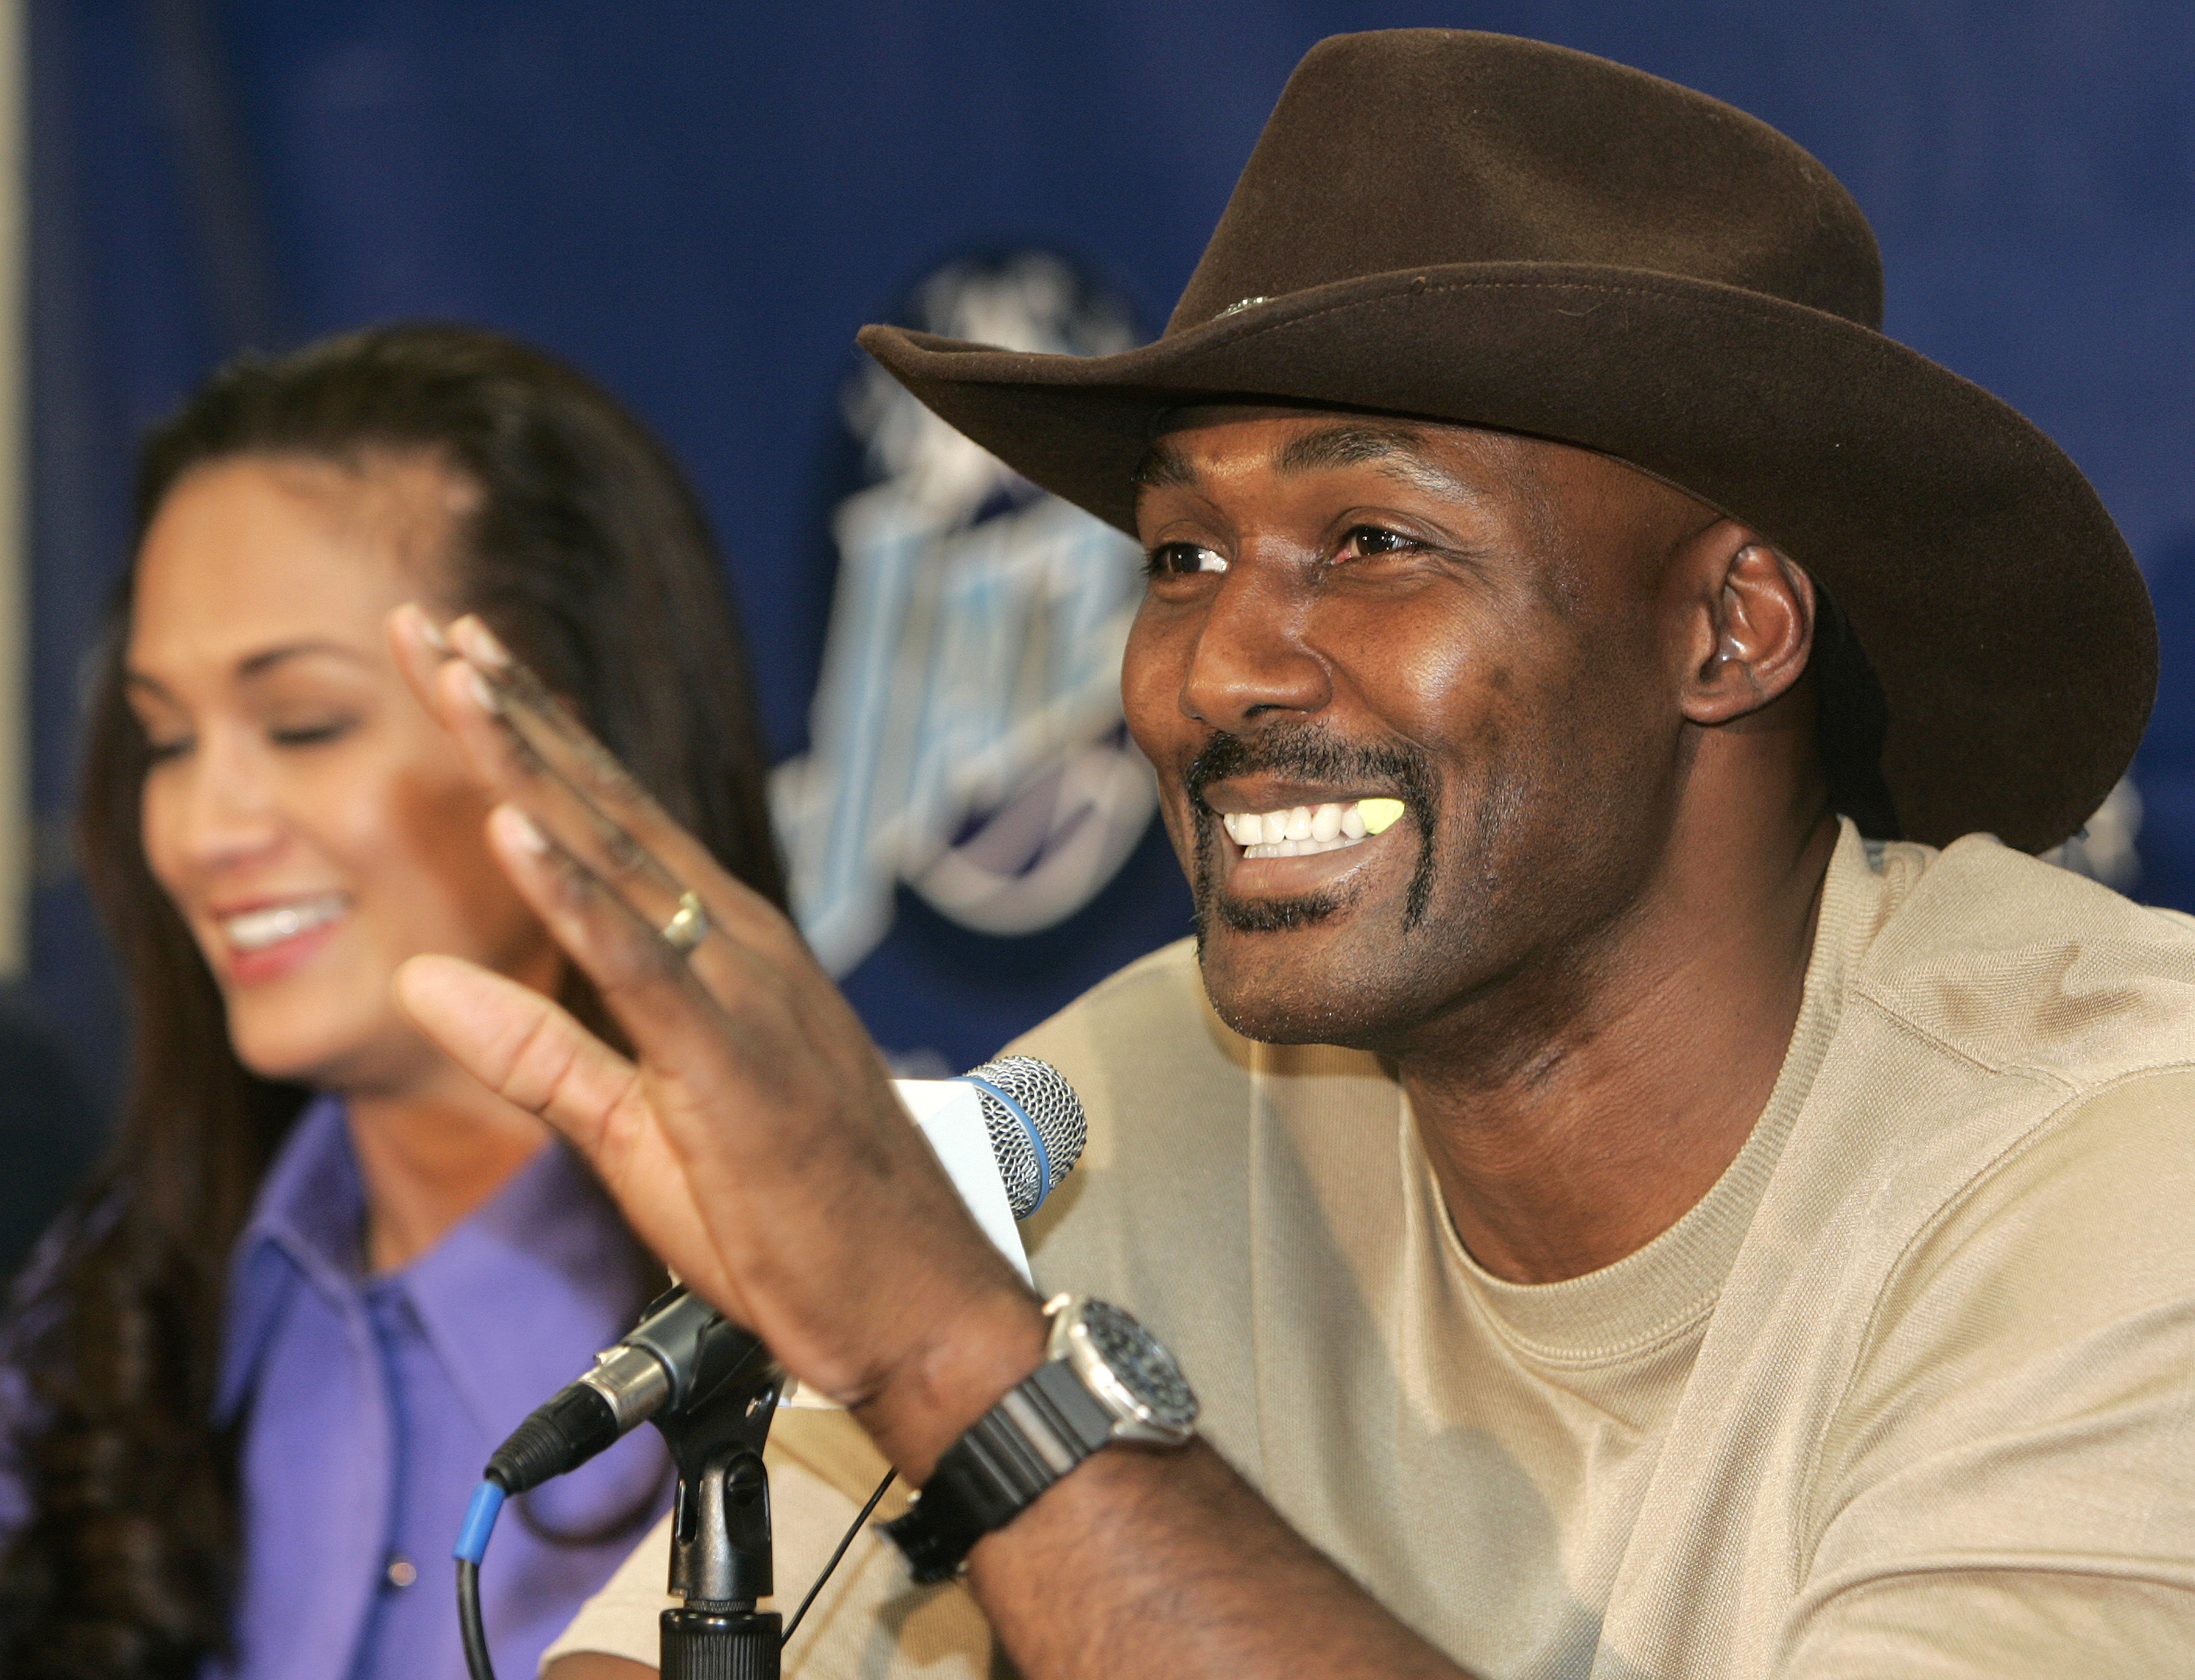 SALT LAKE CITY - FEBRUARY 13:  Karl Malone gestures as he announces his retirement from playing NBA basketball as his wife Kay (L) listens on February 13, 2005 at the Delta Center in Salt Lake City, Utah. Malone played 19 years in the NBA, 18 with the Uta